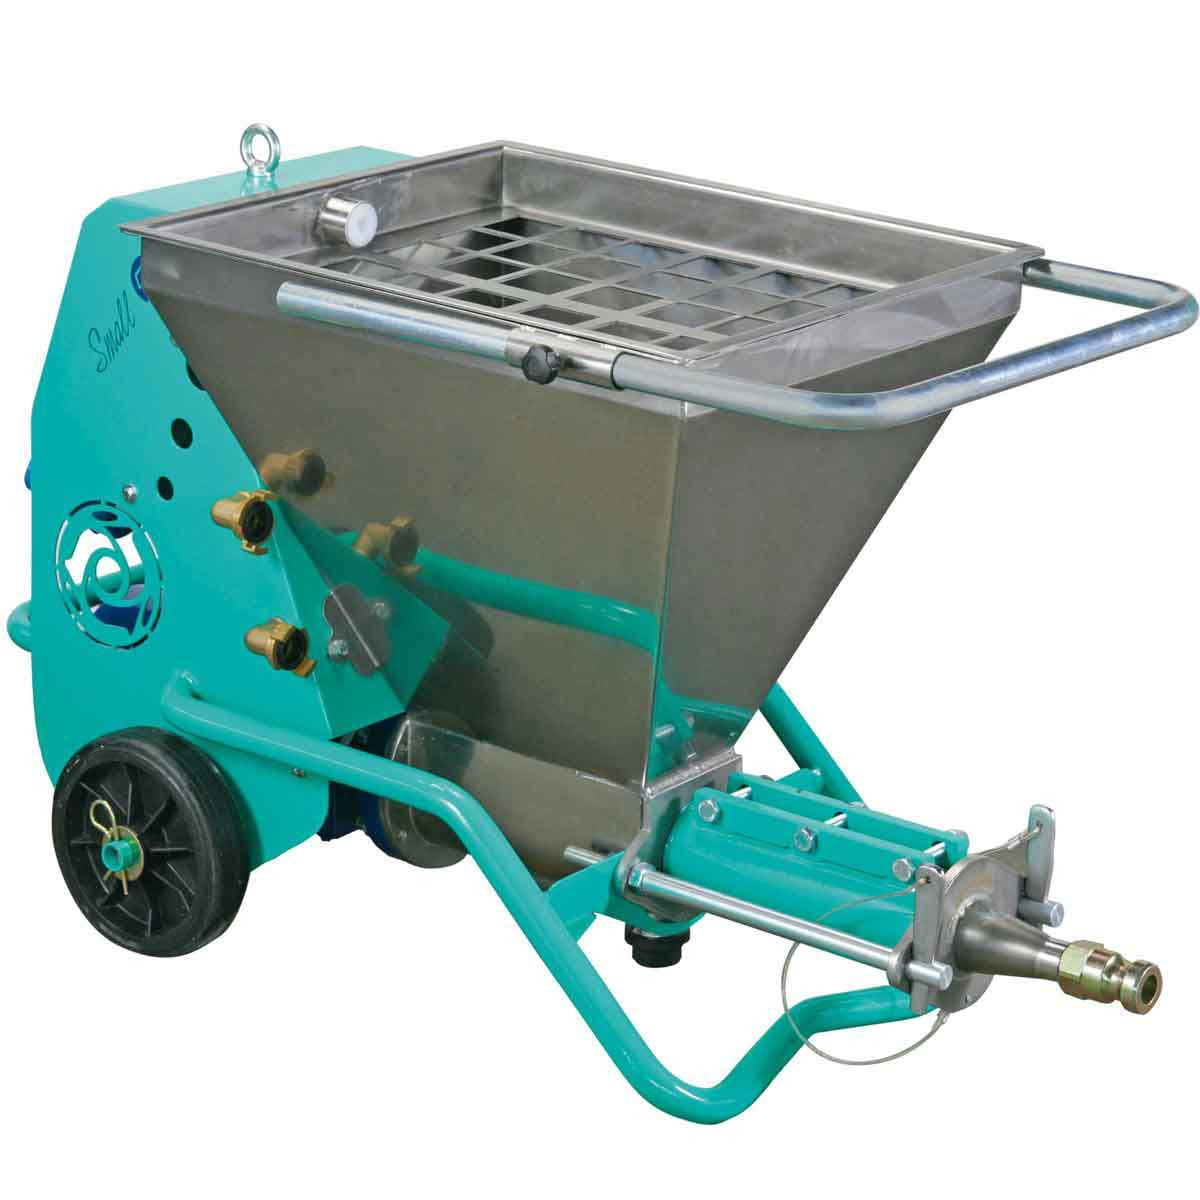 1106045 Pumping & Spraying Machines